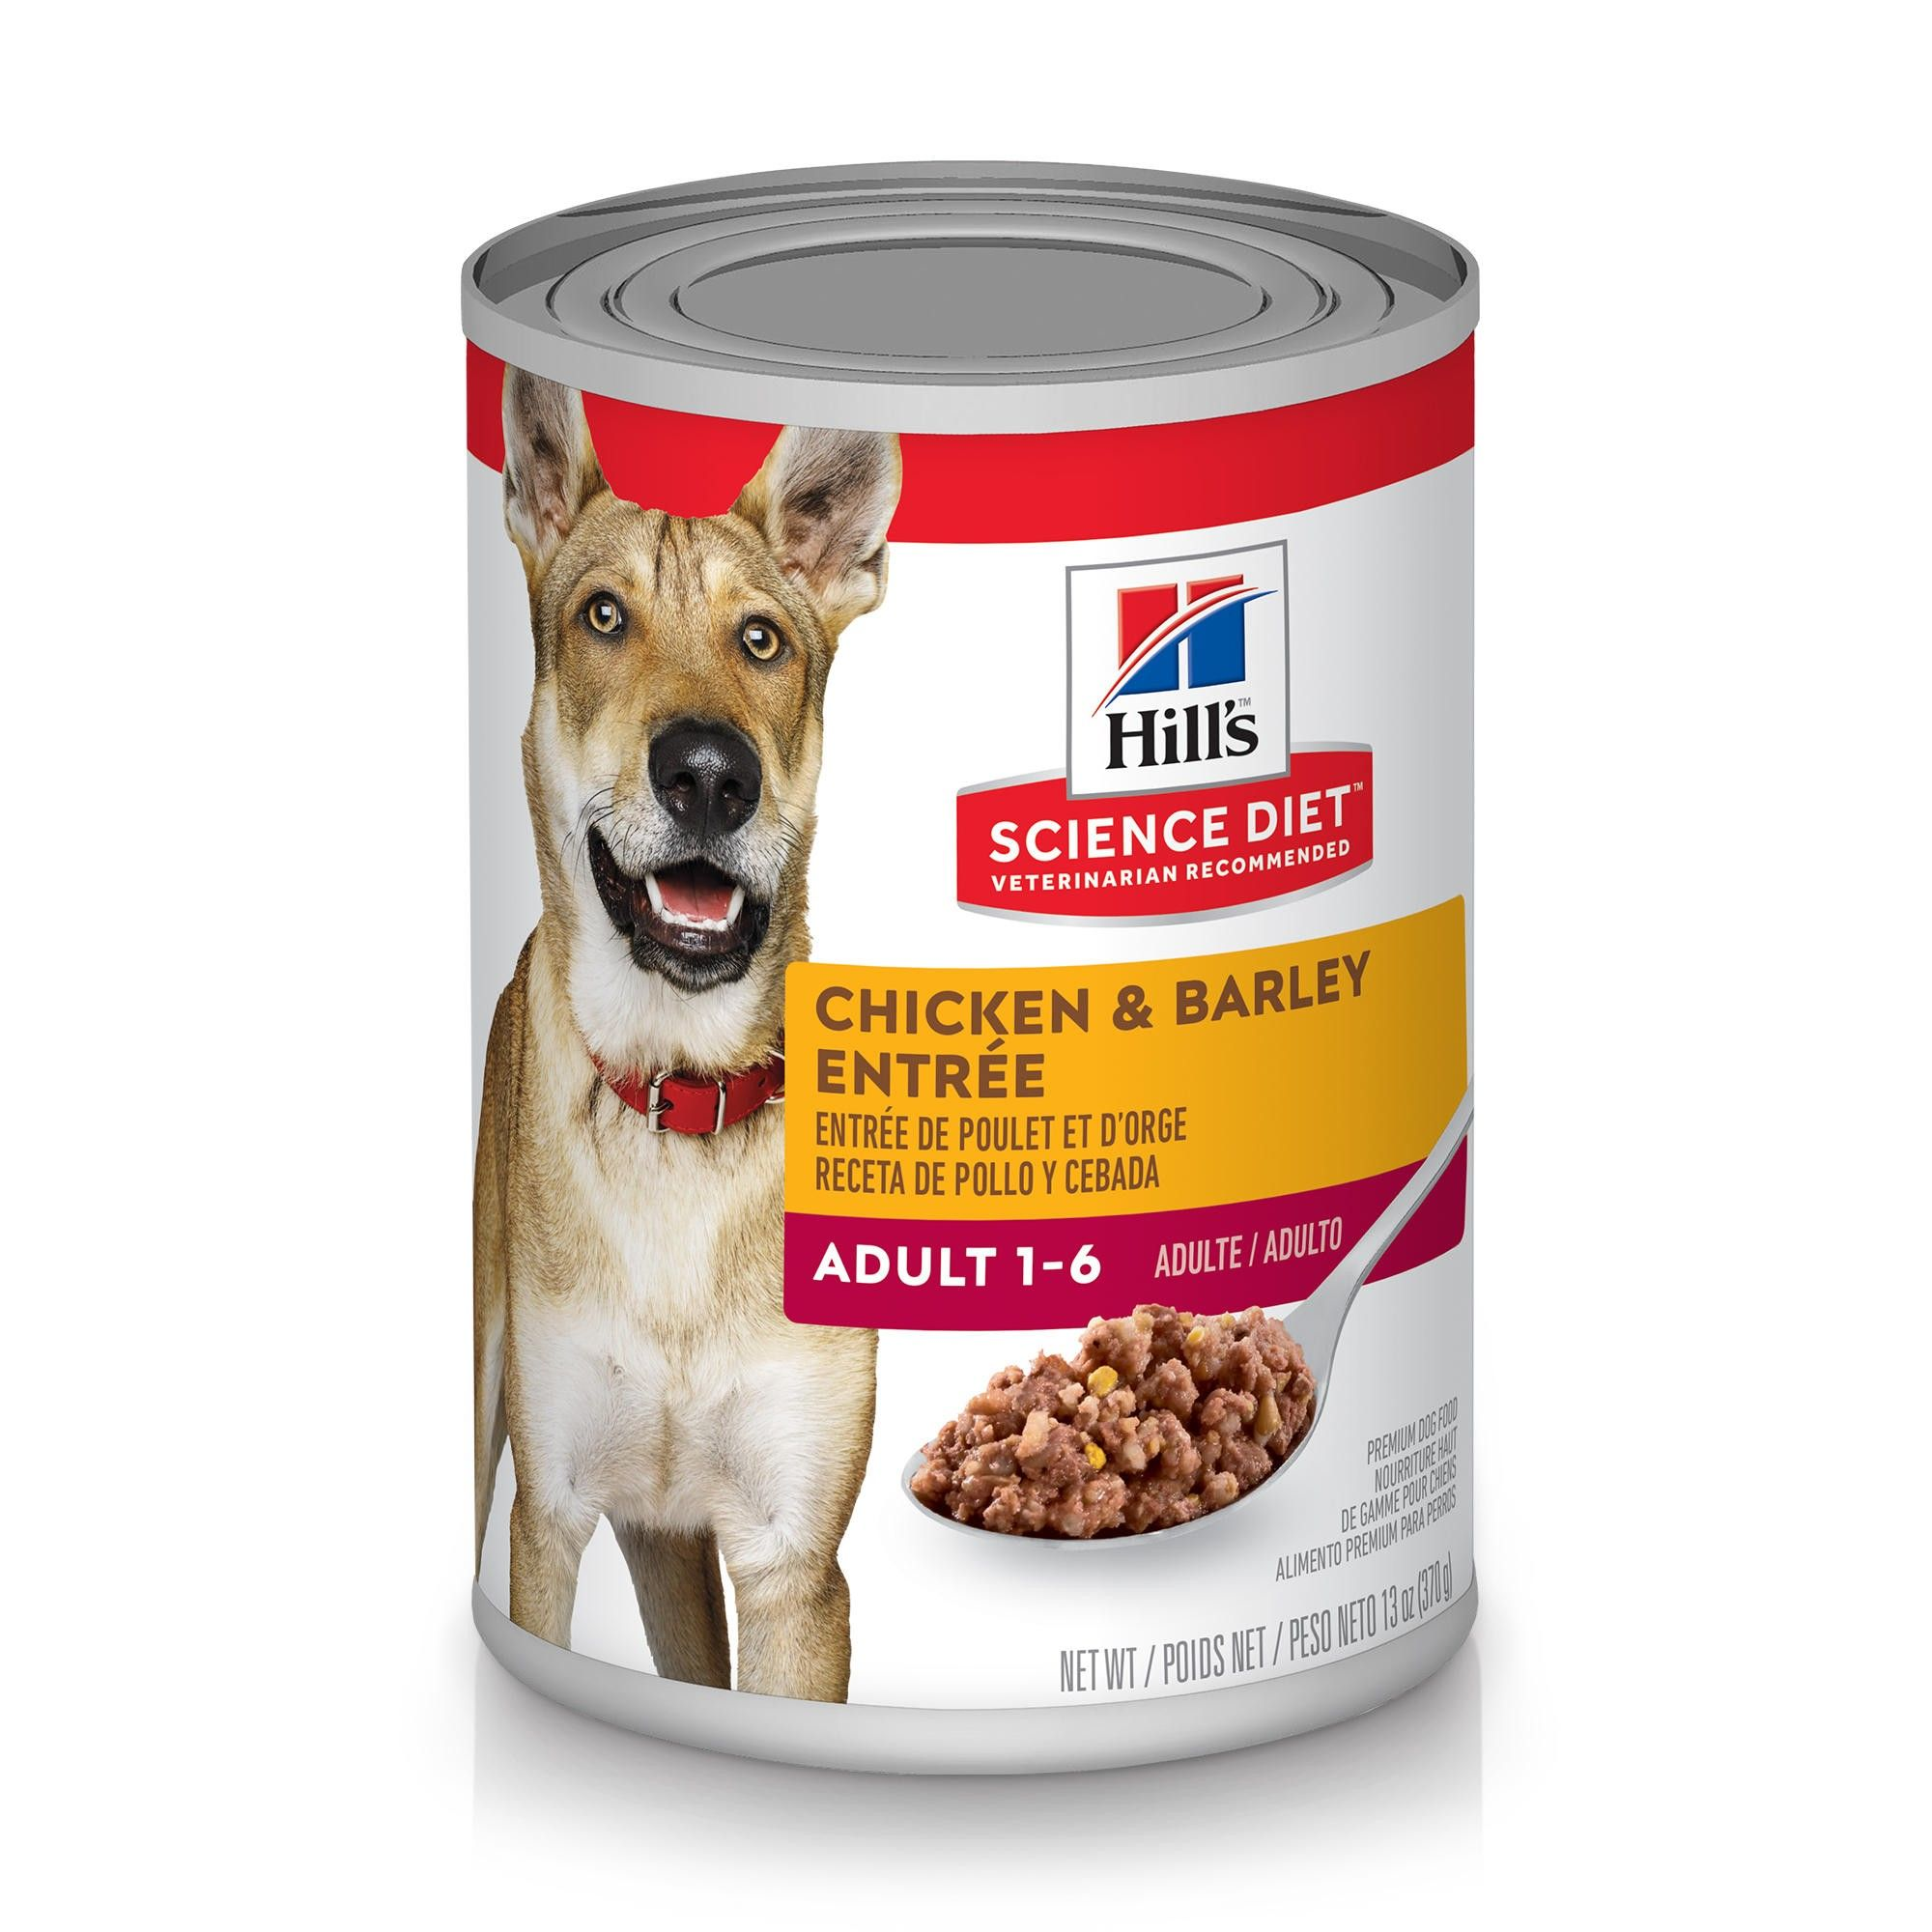 Hill's Science Diet Adult Chicken & Barley Entree Canned Dog Food Image